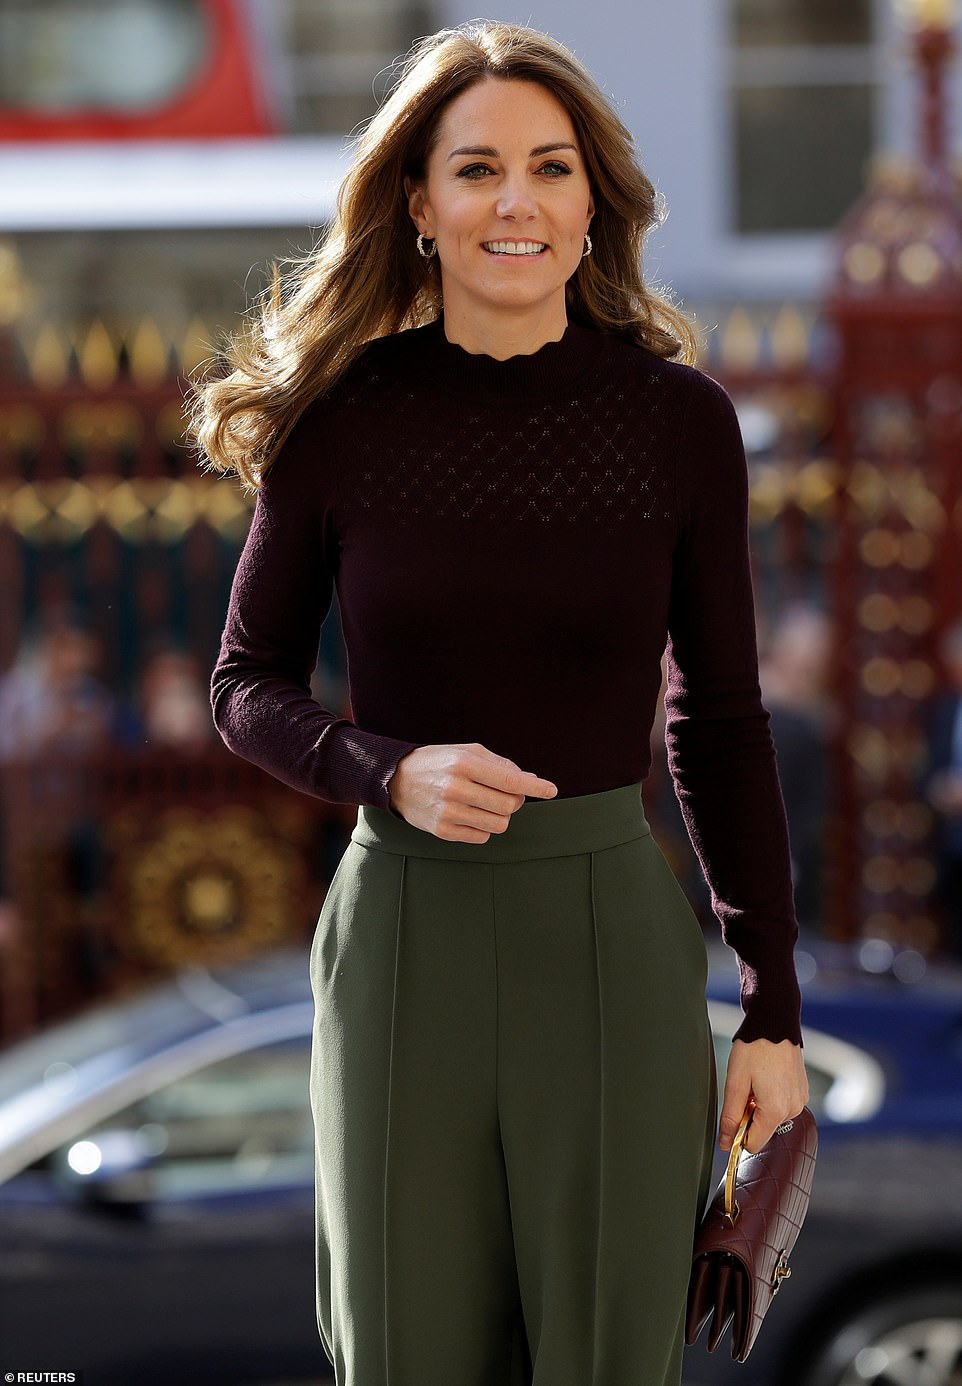 Kate Middleton stuns in Jigsaw culottes during a visit to the Natural History Museum